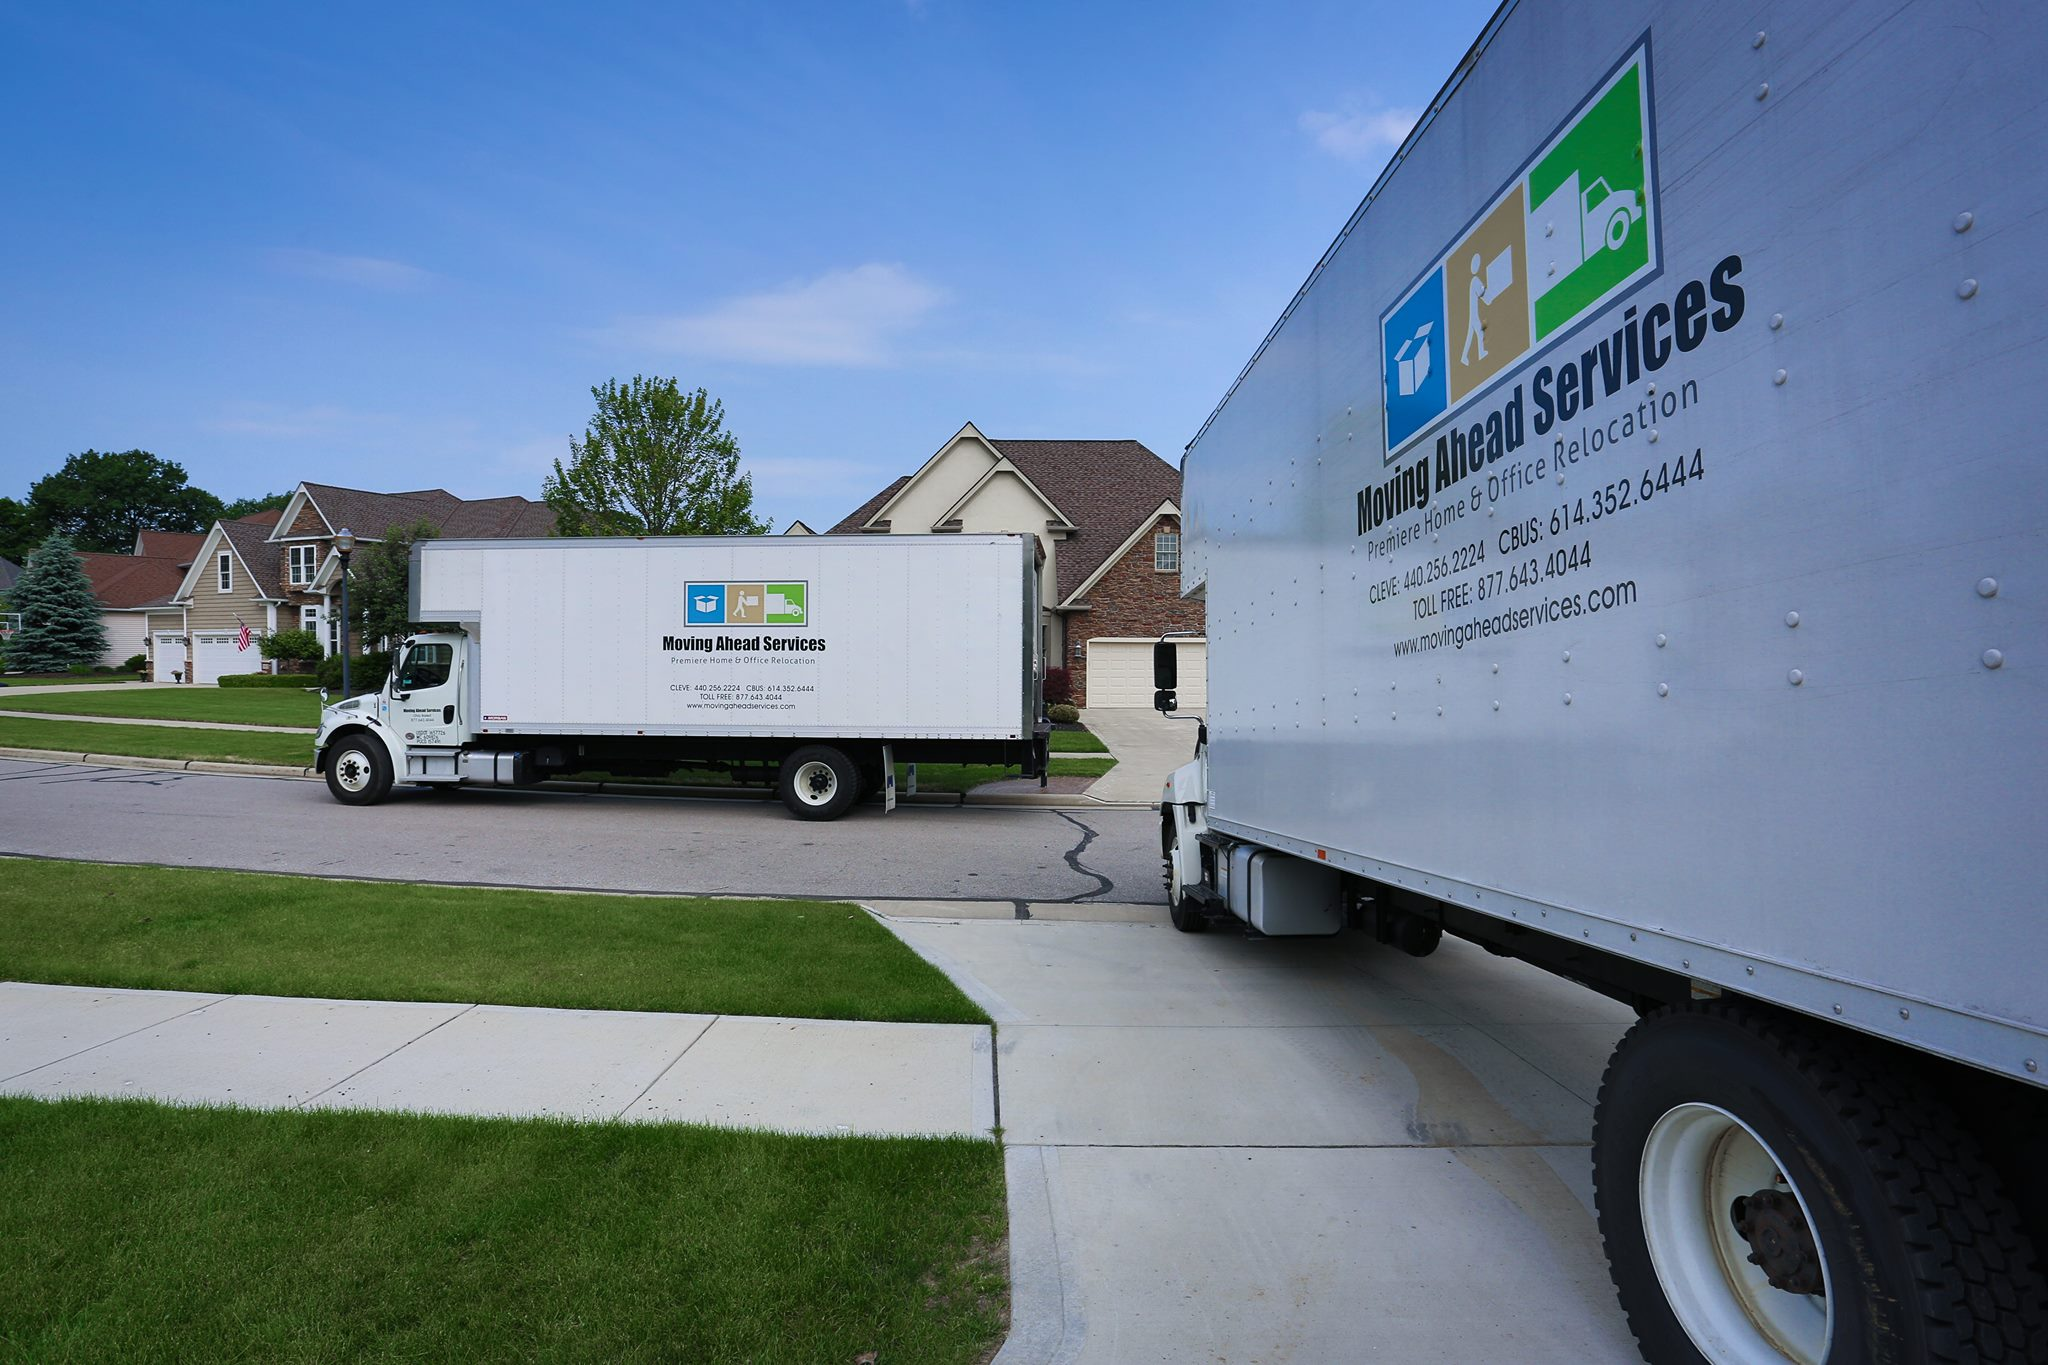 Ohio's Top Rated Local® Moving Service Companies Award Winner: Moving Ahead Services